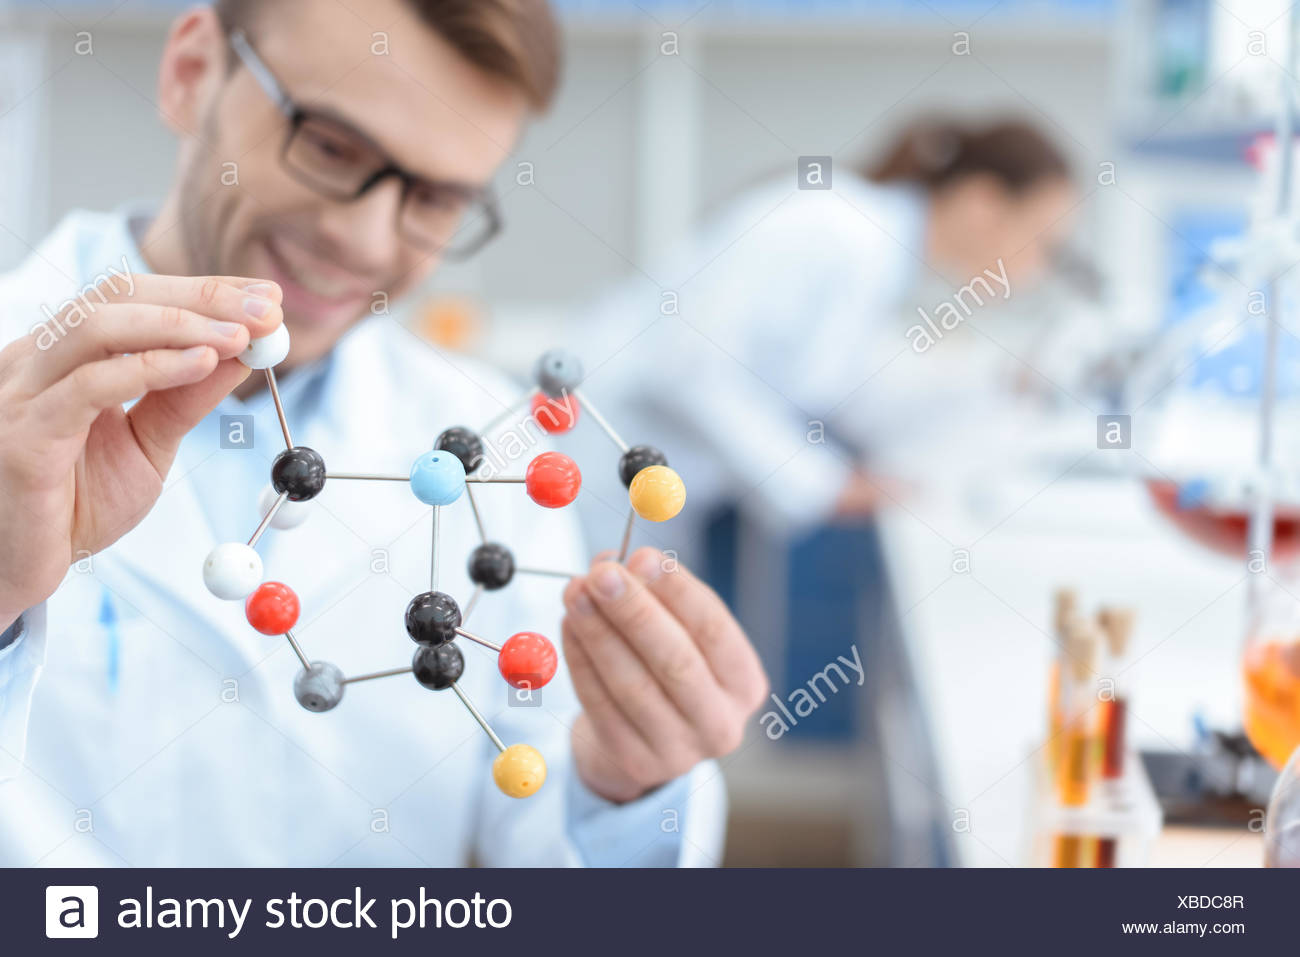 Smiling man scientist in eyeglasses holding molecular model in lab - Stock Image